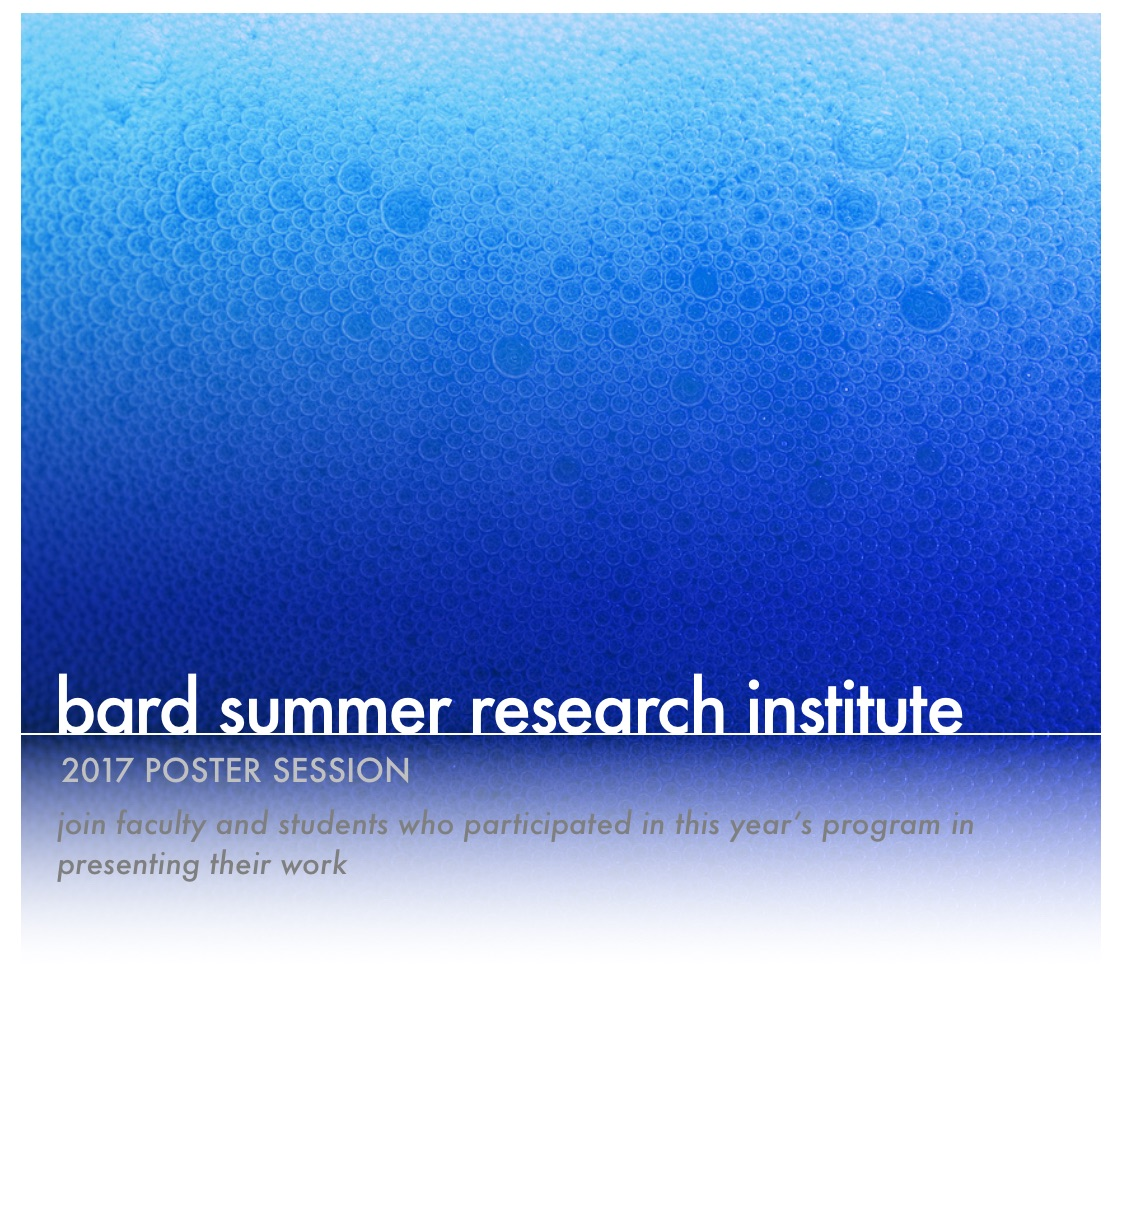 [Bard Summer Research Institute Poster Session]